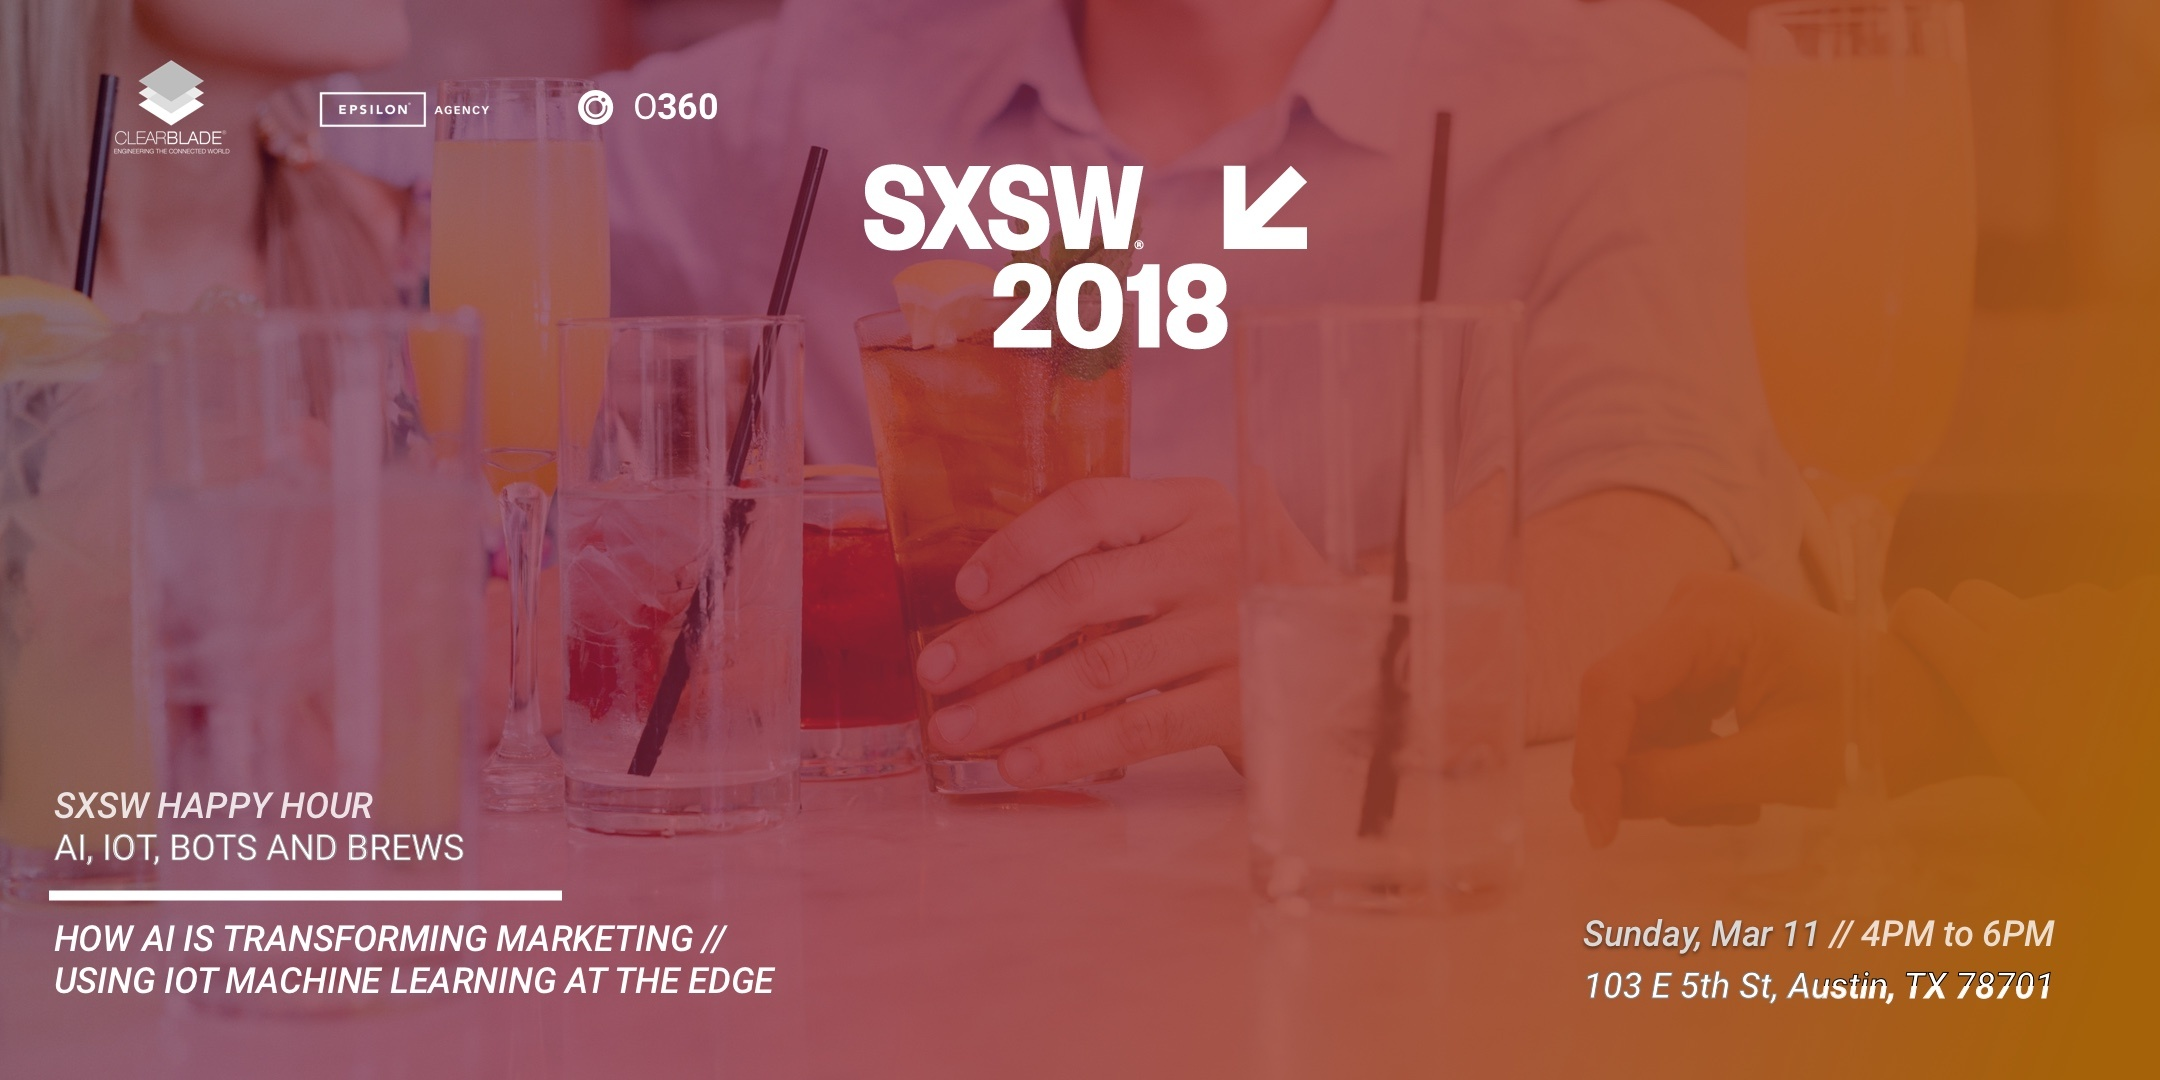 OUR SXSW HAPPY HOUR: AI, IOT, BOTS AND BREWS